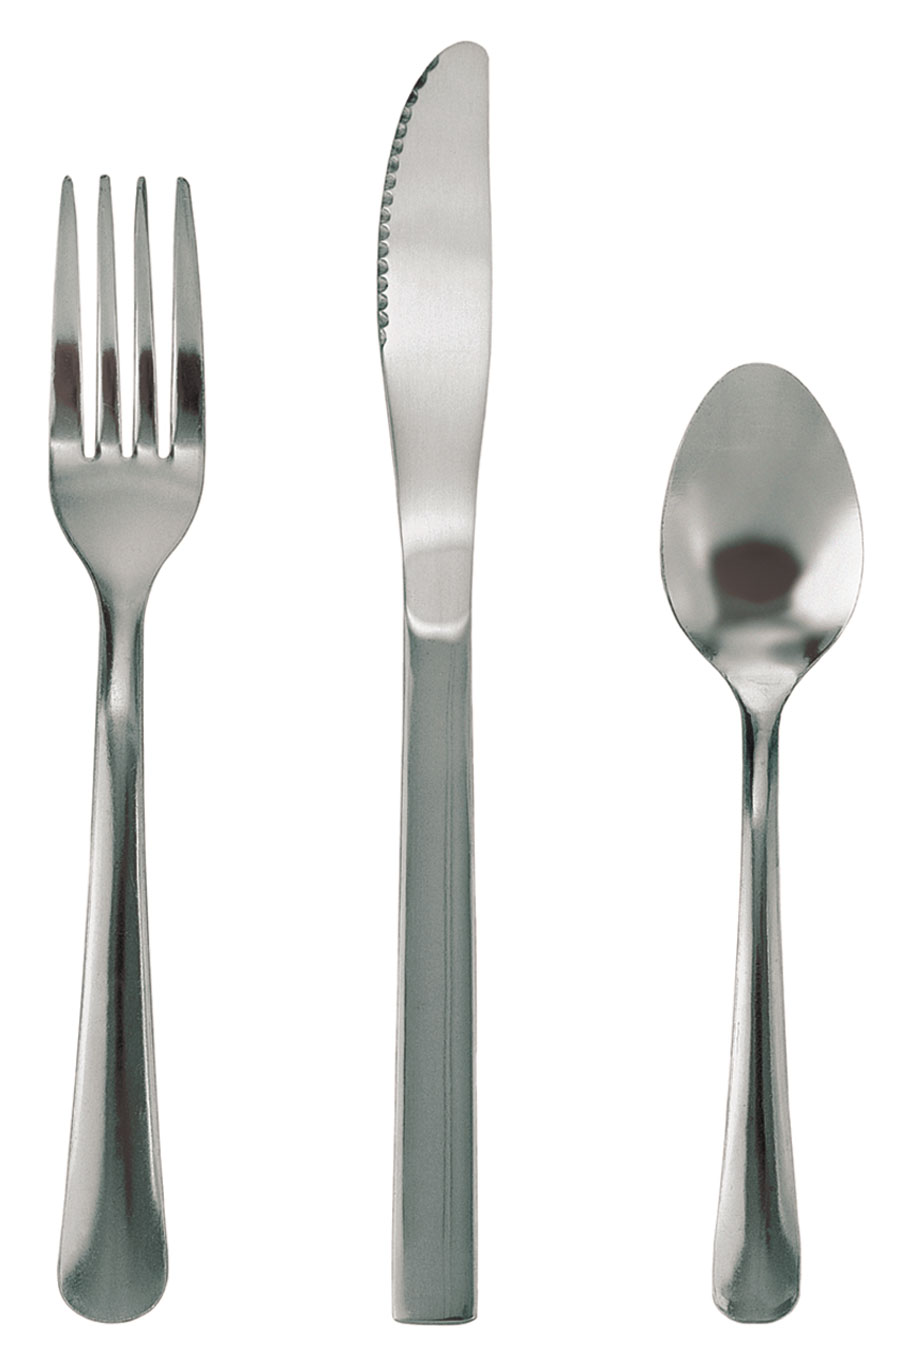 Update International WM / CP-32 Medium Weight Windsor Bouillon Spoon in Clear Pack - 2 doz